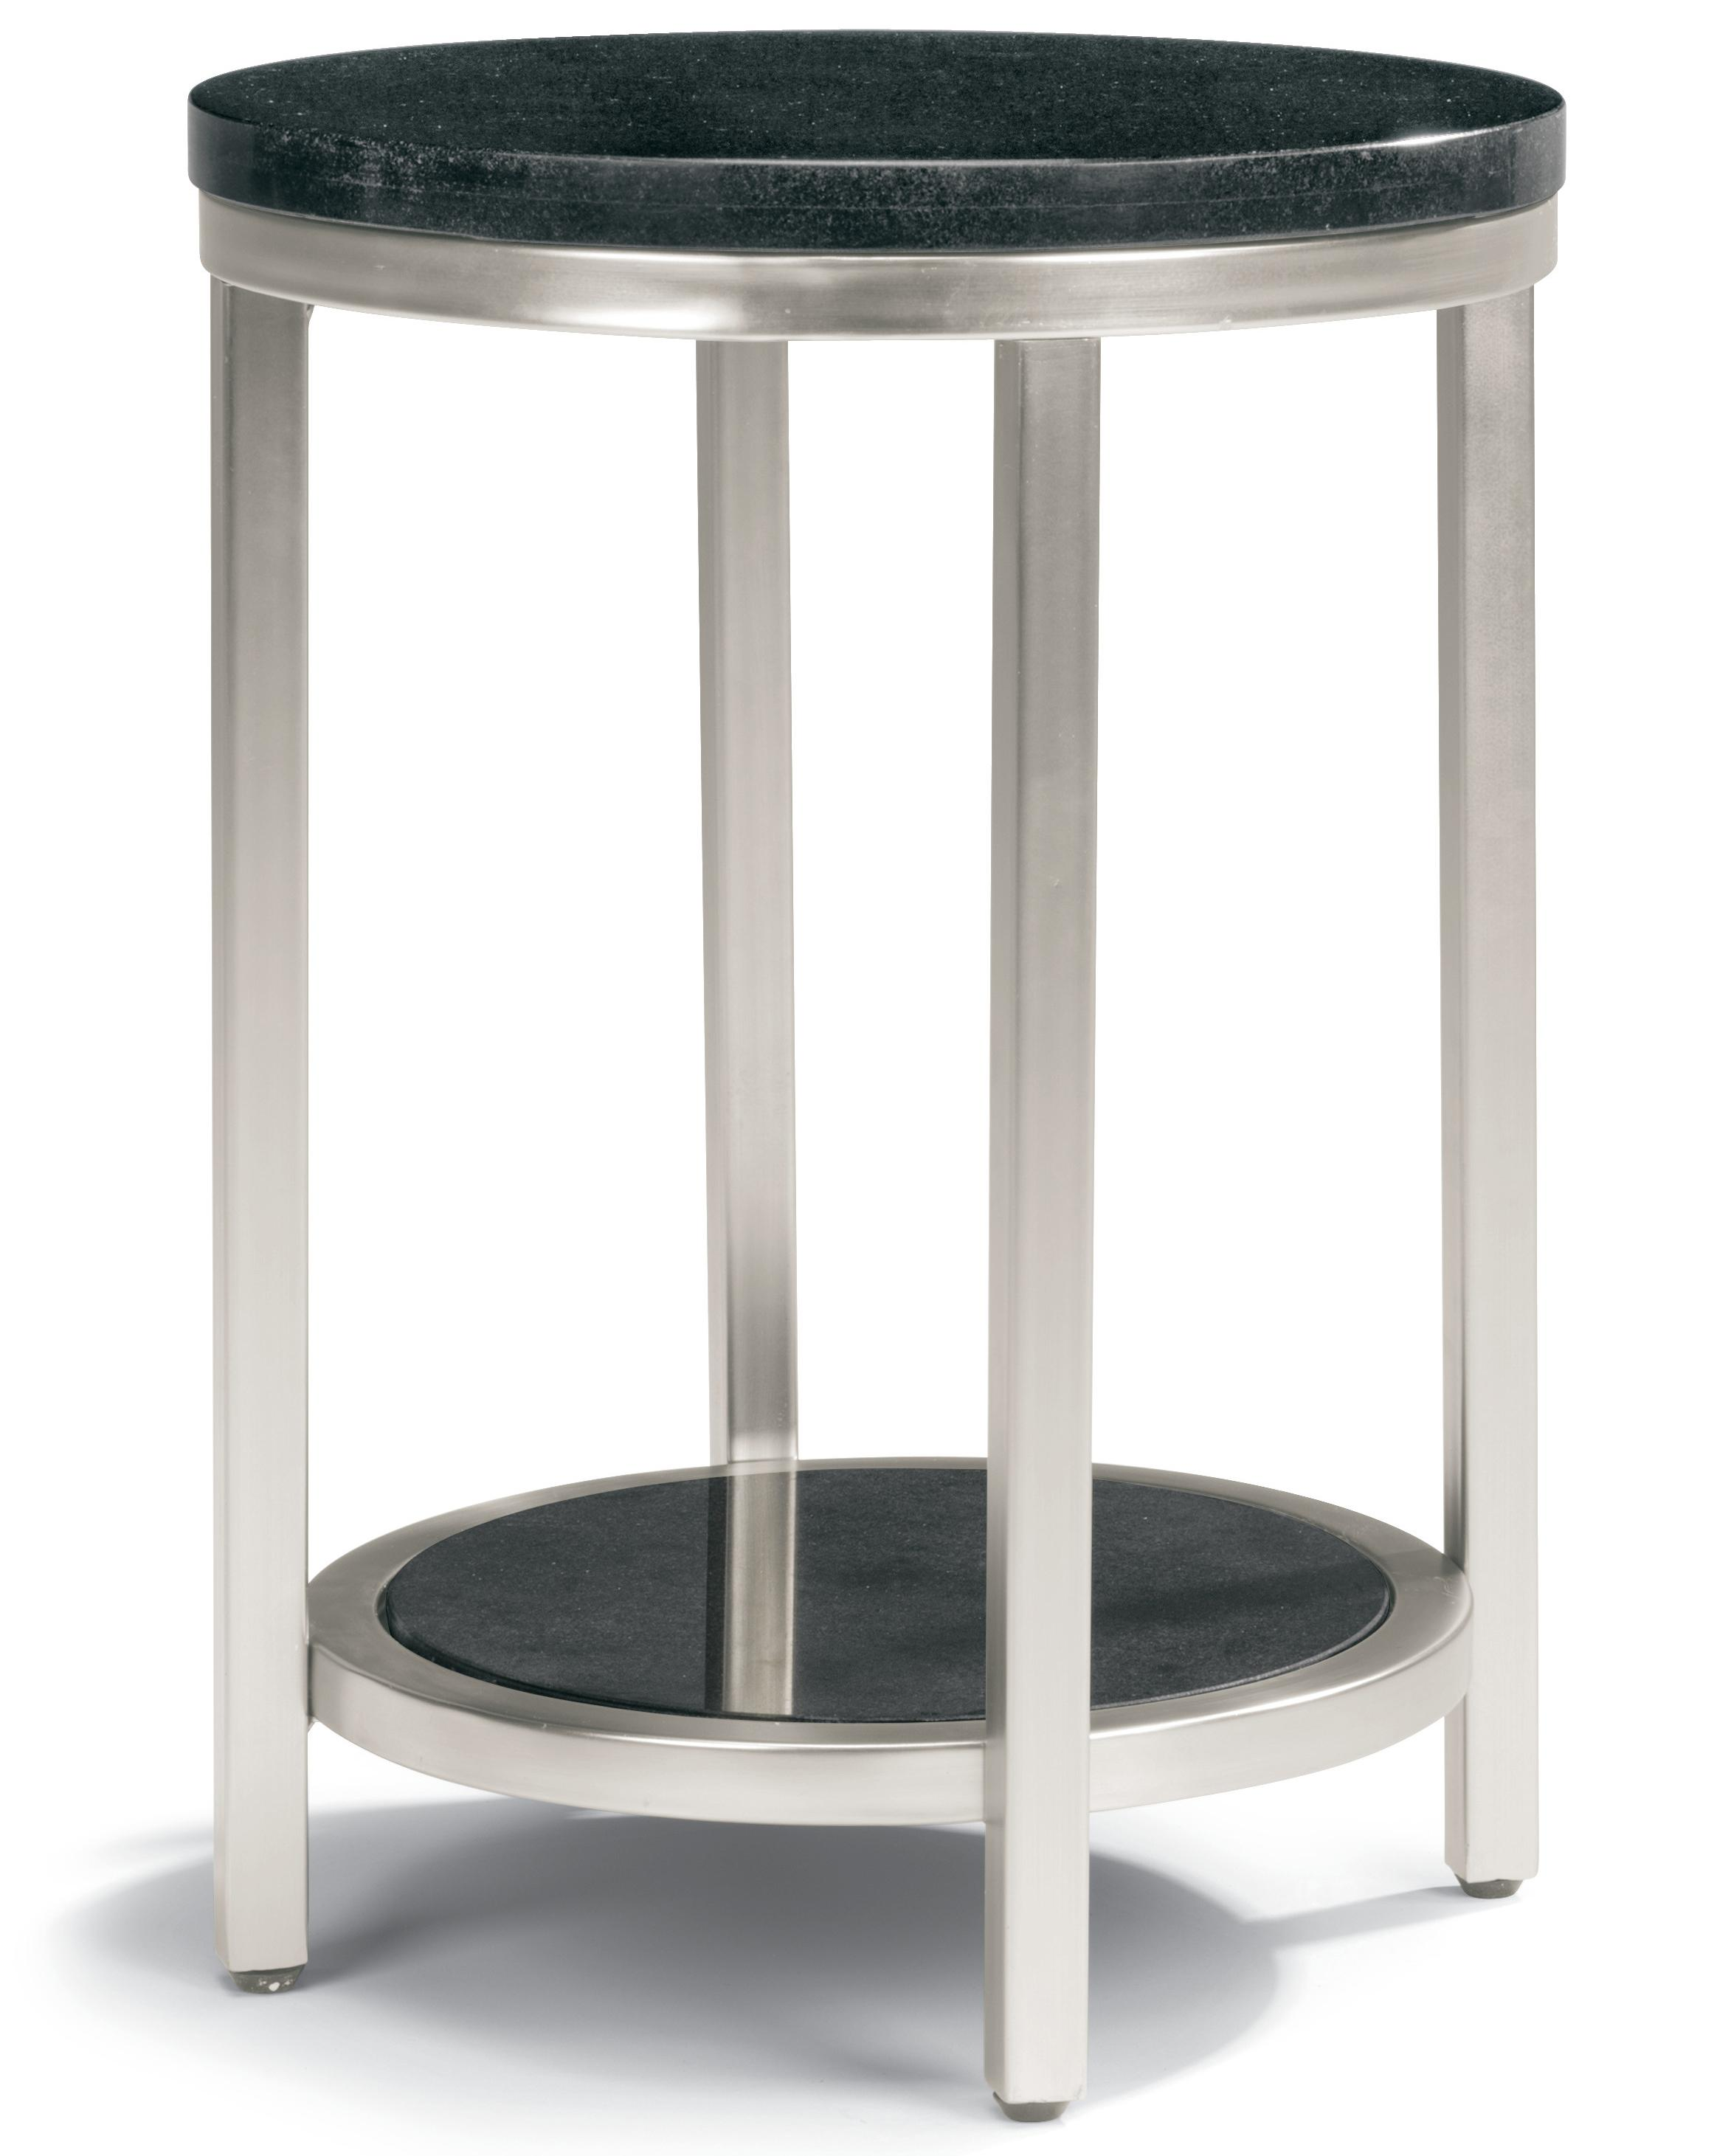 Galaxy chair side table with granite top by flexsteel